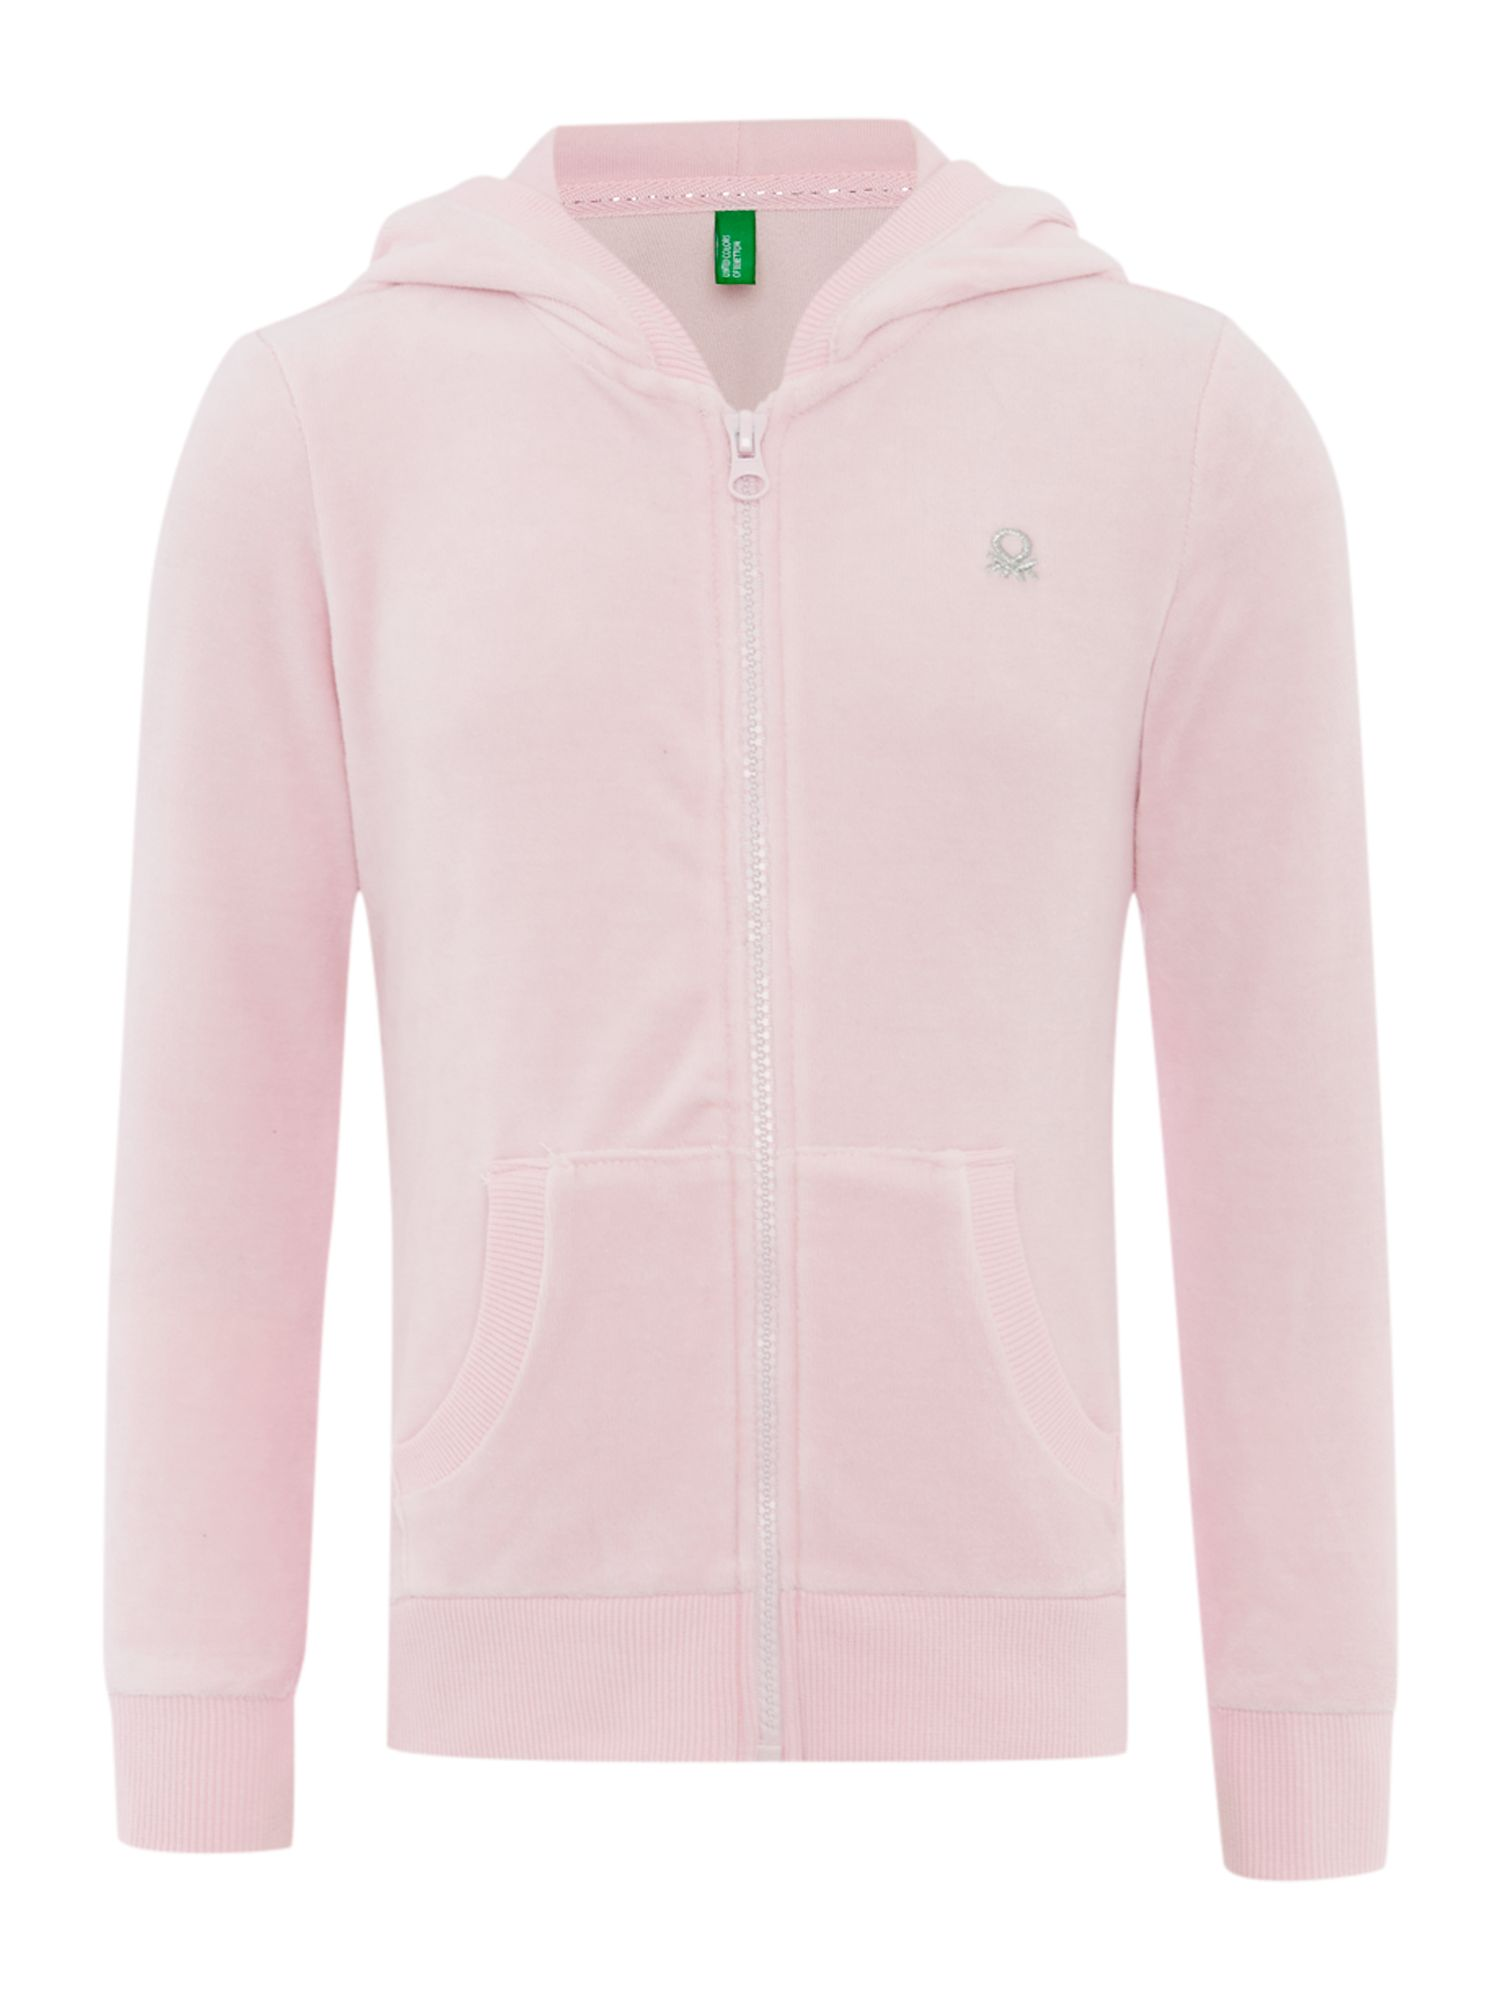 Girls zip through hooded top